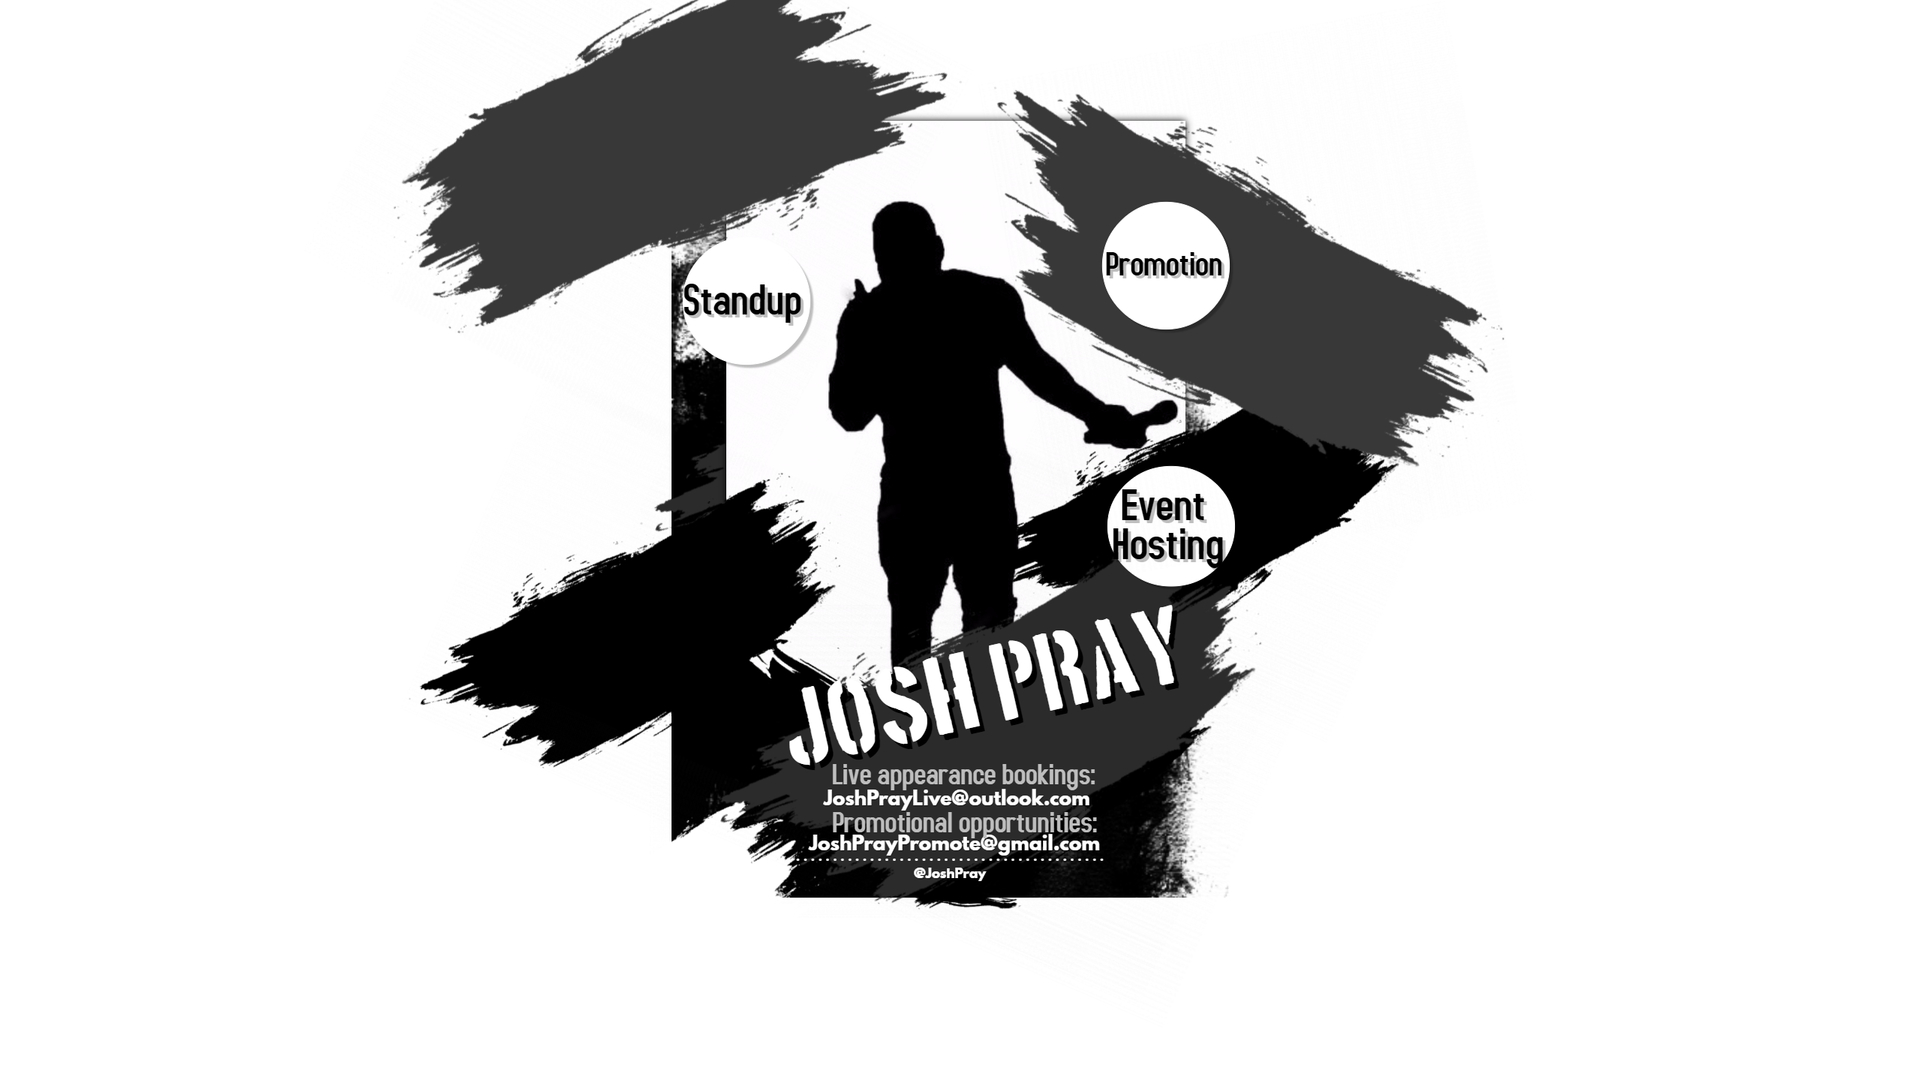 JOSH PRAY ENTERTAINMENT- Official Merchandise Store